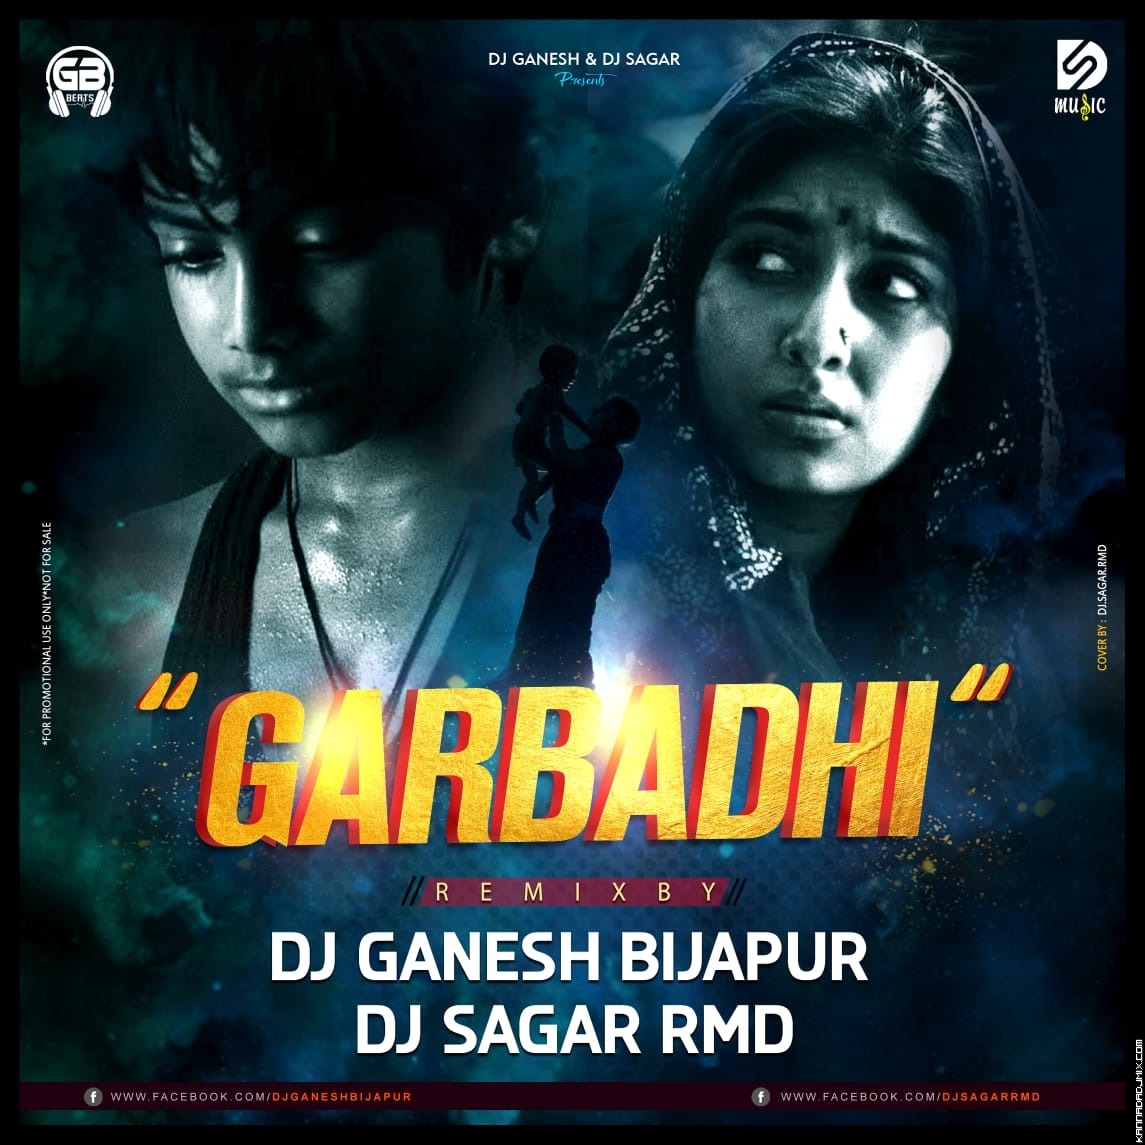 GARBADHI KGF BASS BOOSTED  REMIX DJ GANESH [BIJAPUR] AND DJ SAGAR RMD.mp3